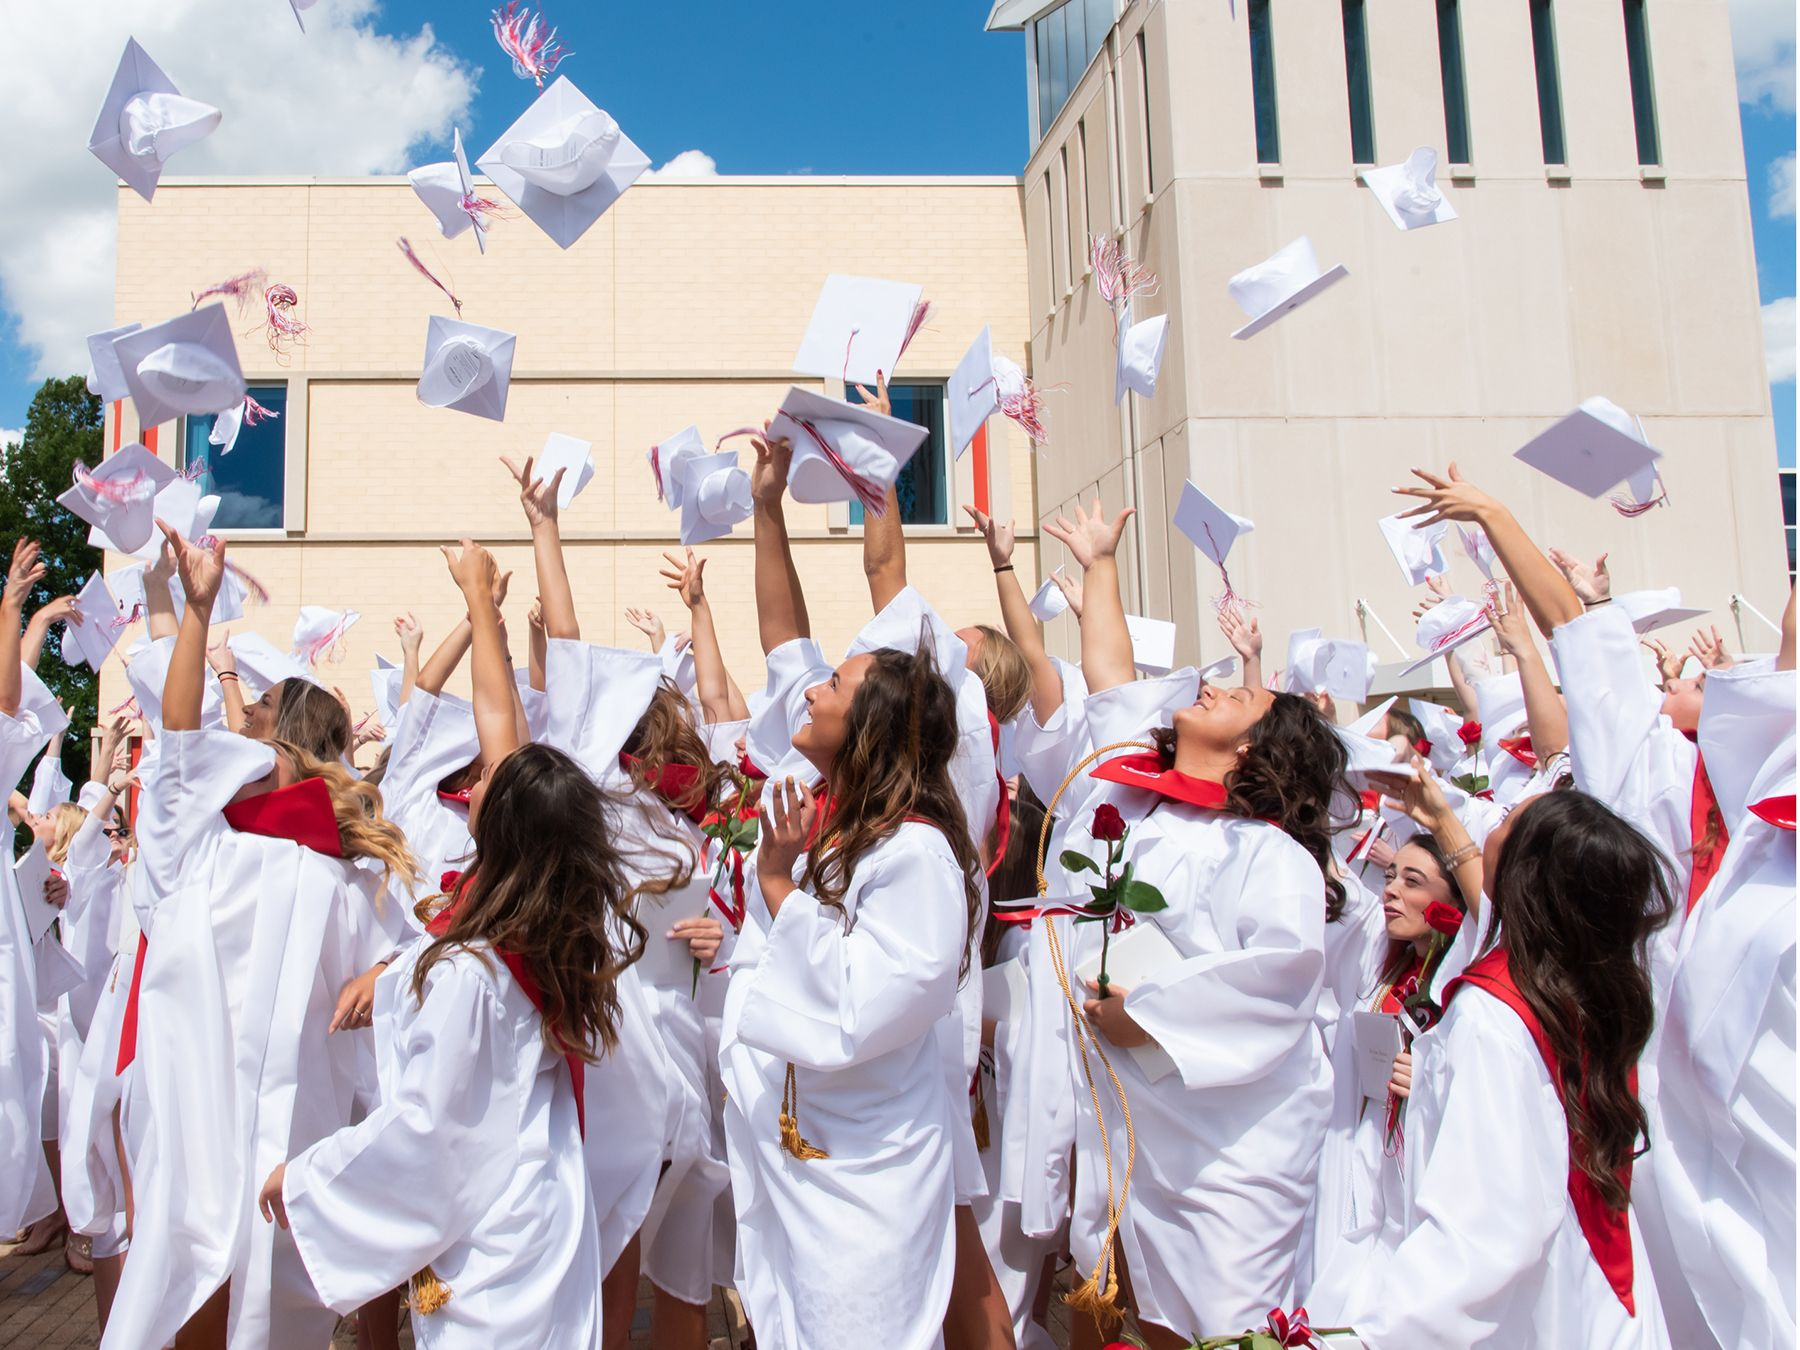 The Class of 2019 celebrates after receiving their diplomas